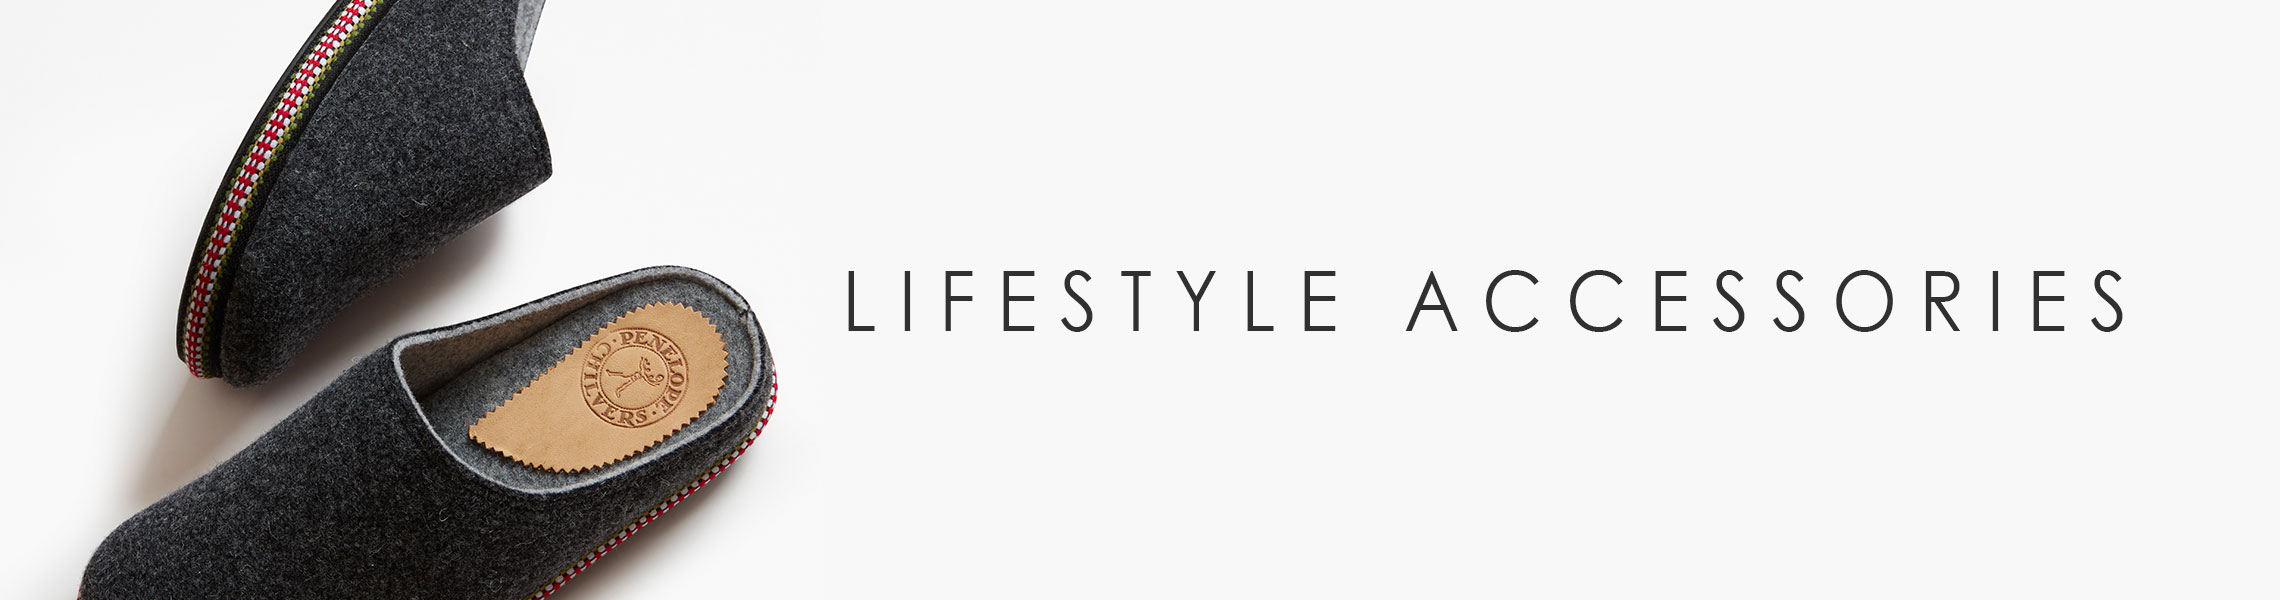 LIFESTYLE ACCESSORIES